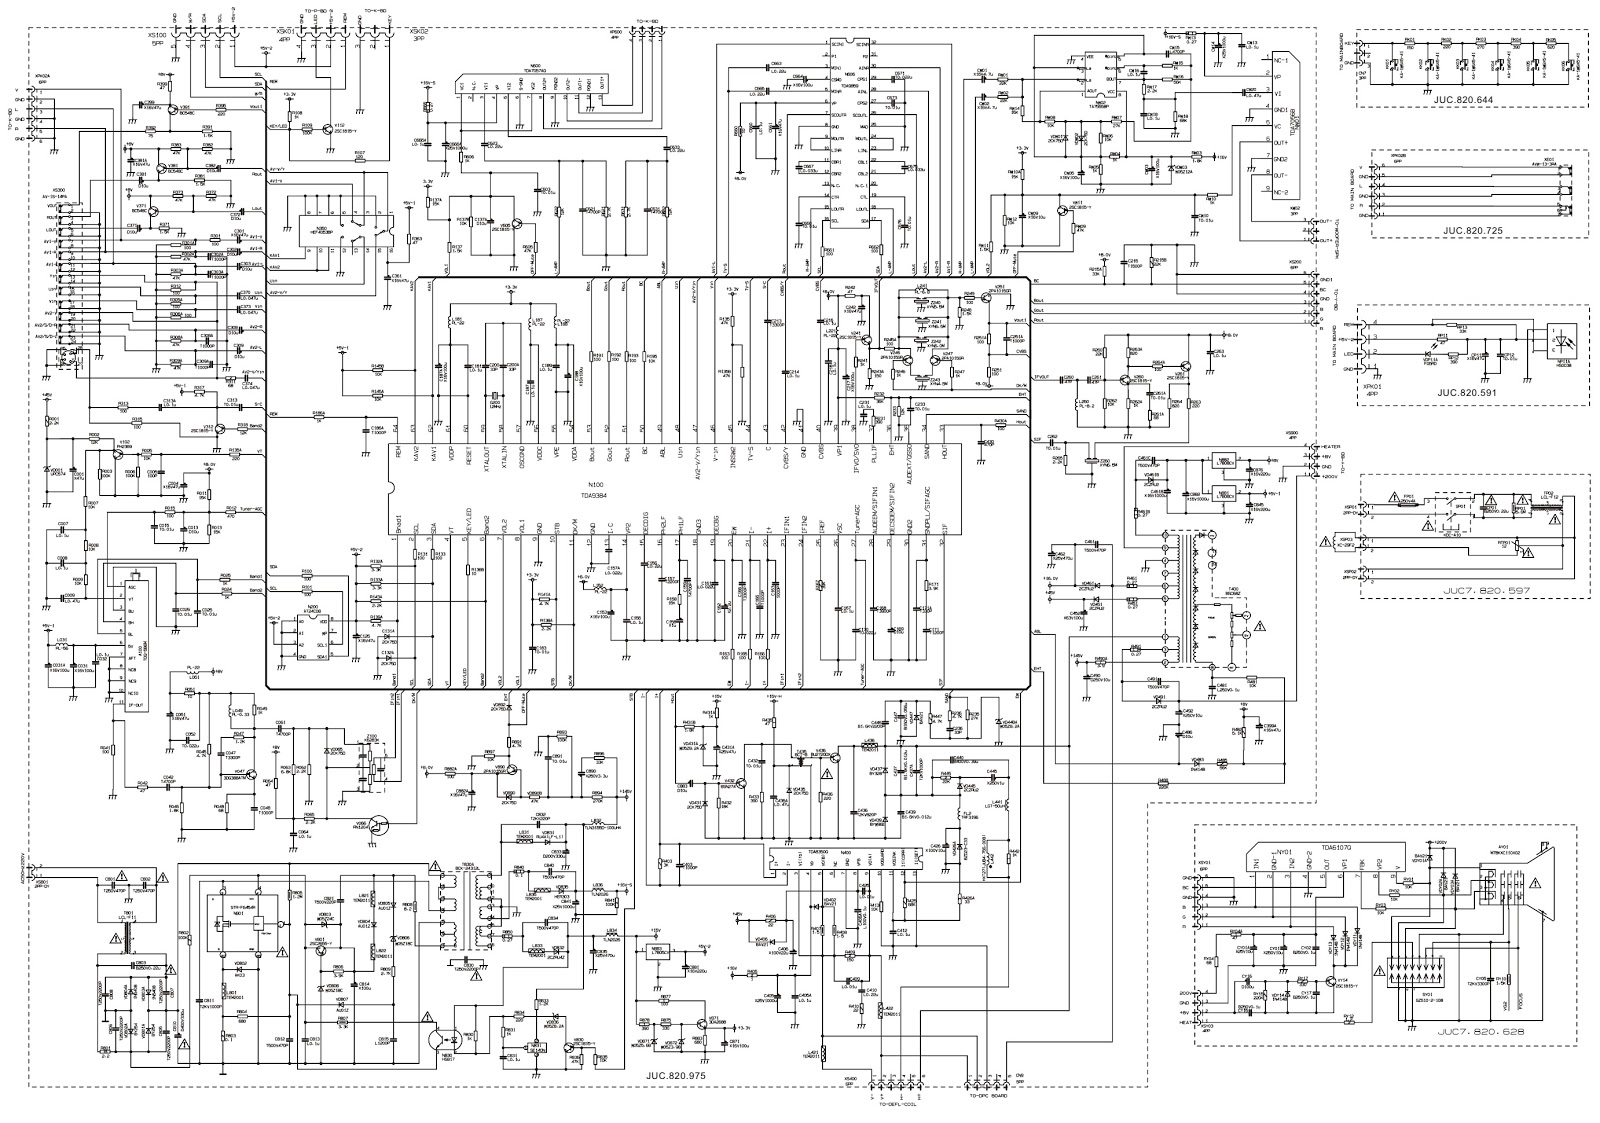 small resolution of tv circuit board diagram pdf electrical wiring diagramled tv diagram pdf wiring diagram loadsamsung led tv